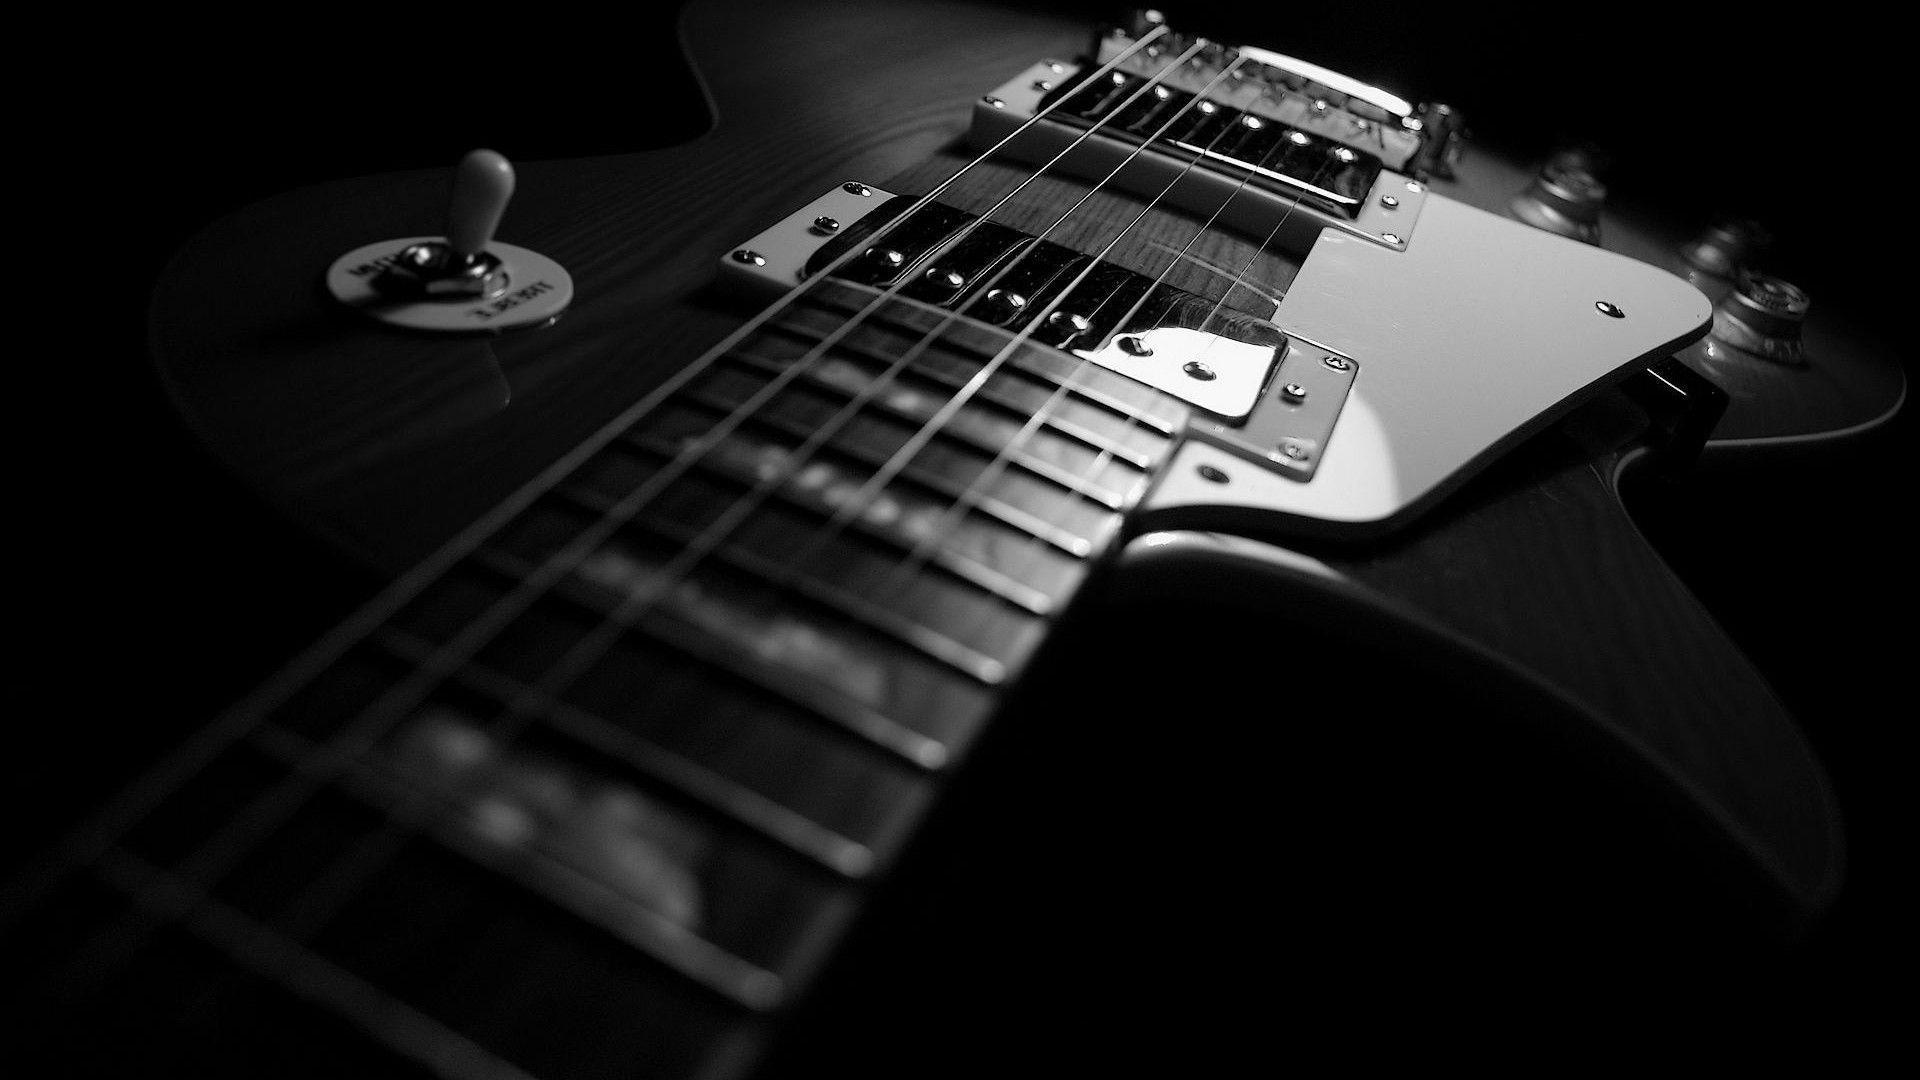 Wallpapers HD 1080p Black And White Guitar